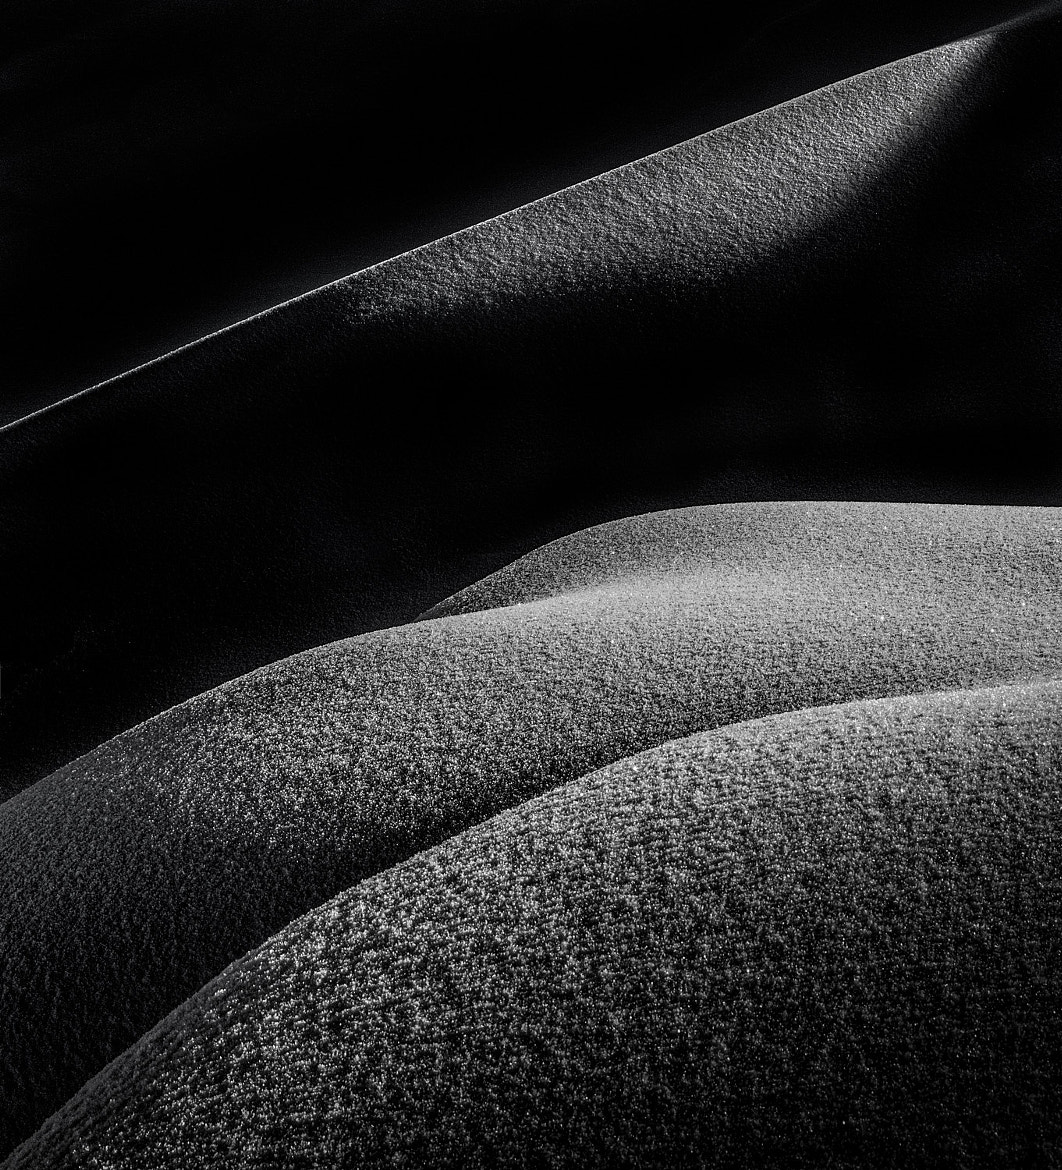 Photograph Form by audun nygaard on 500px